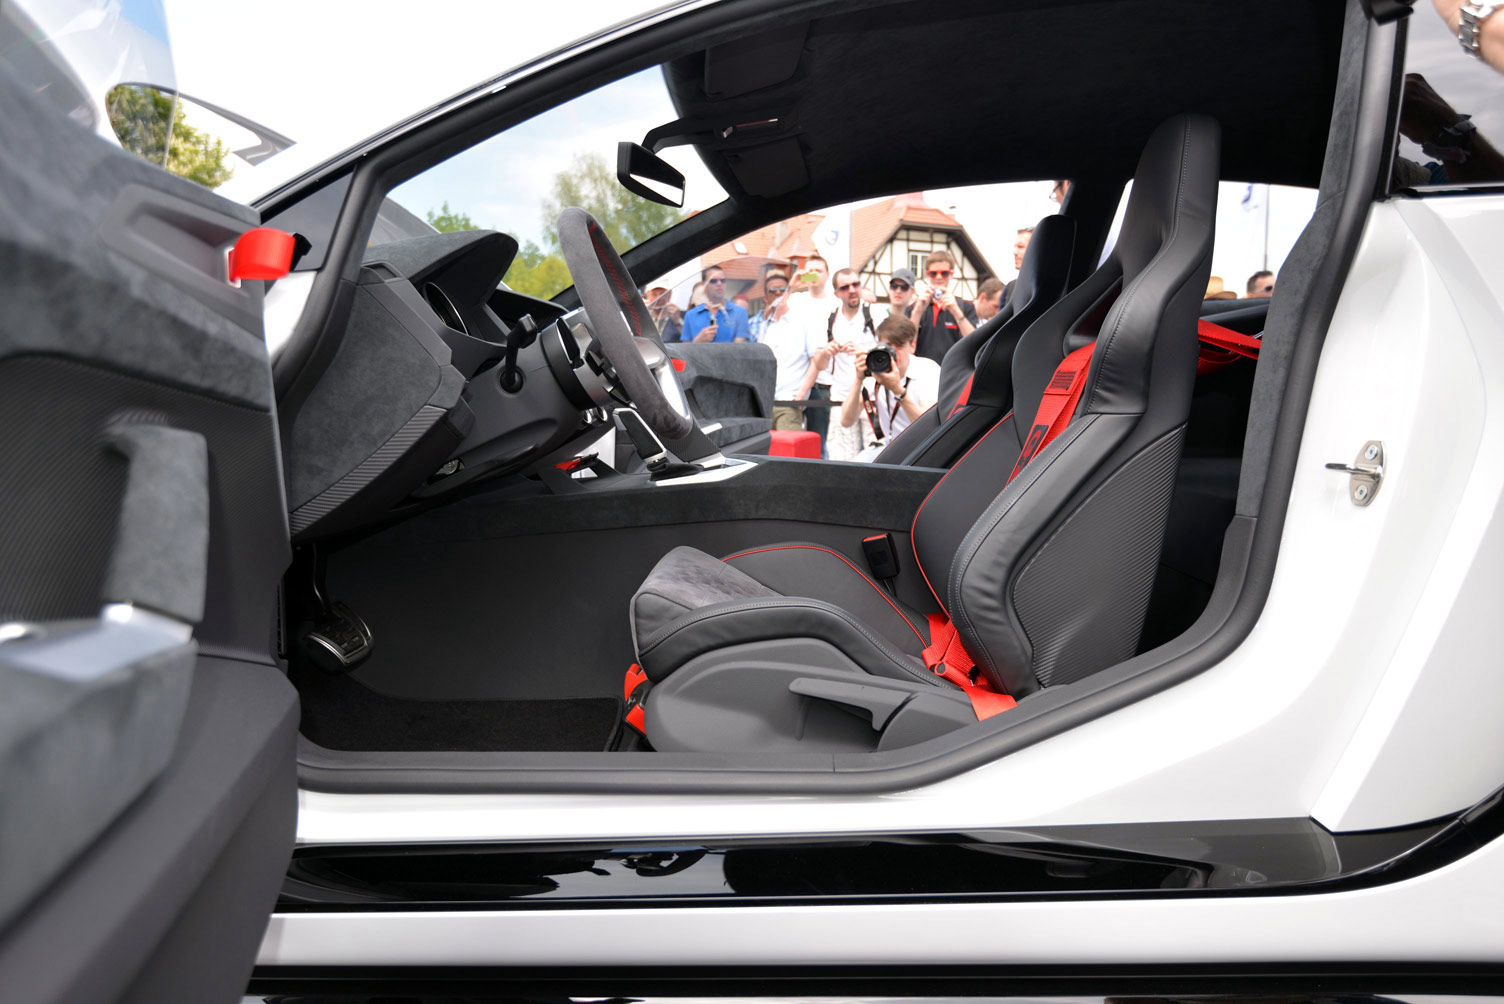 volkswagen-design-vision-gti-worthersee-058